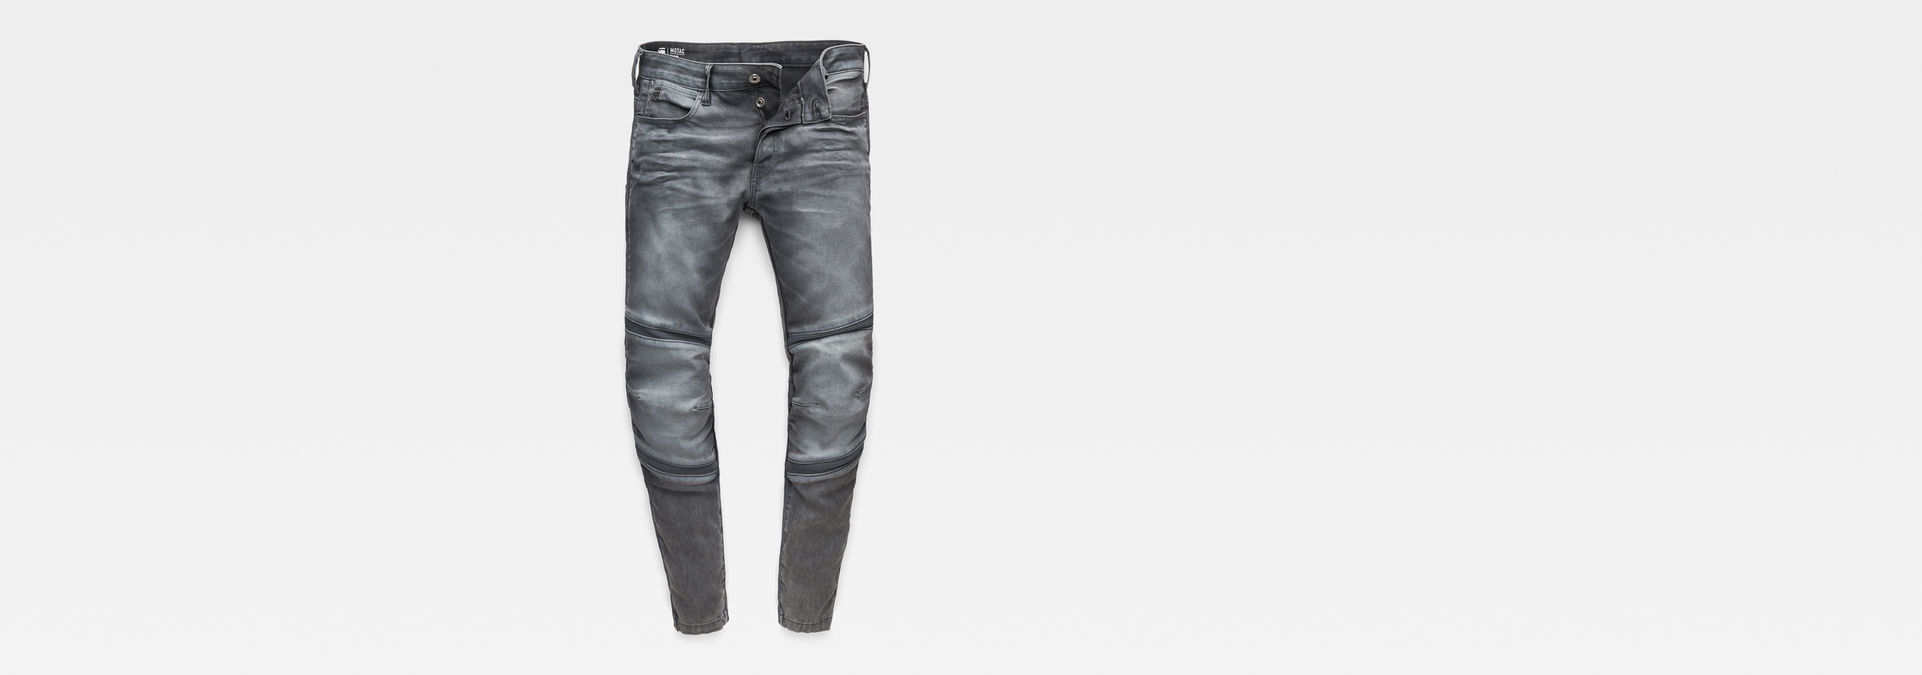 G-STAR RAW Arc 3D Slim Colored Jeans Uomo